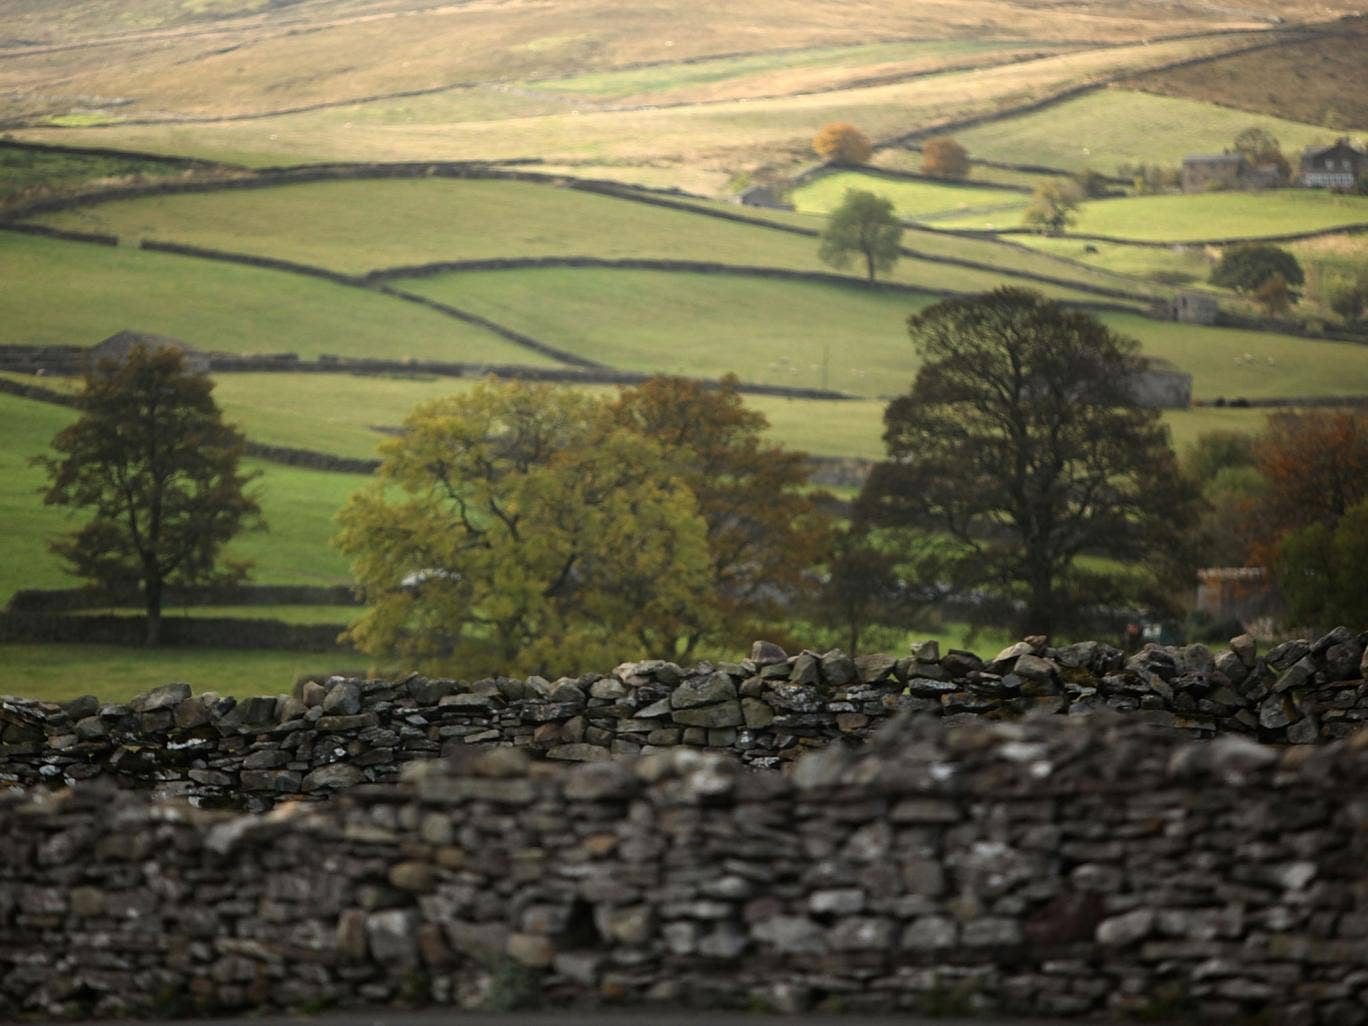 The incident took place in Wensleydale